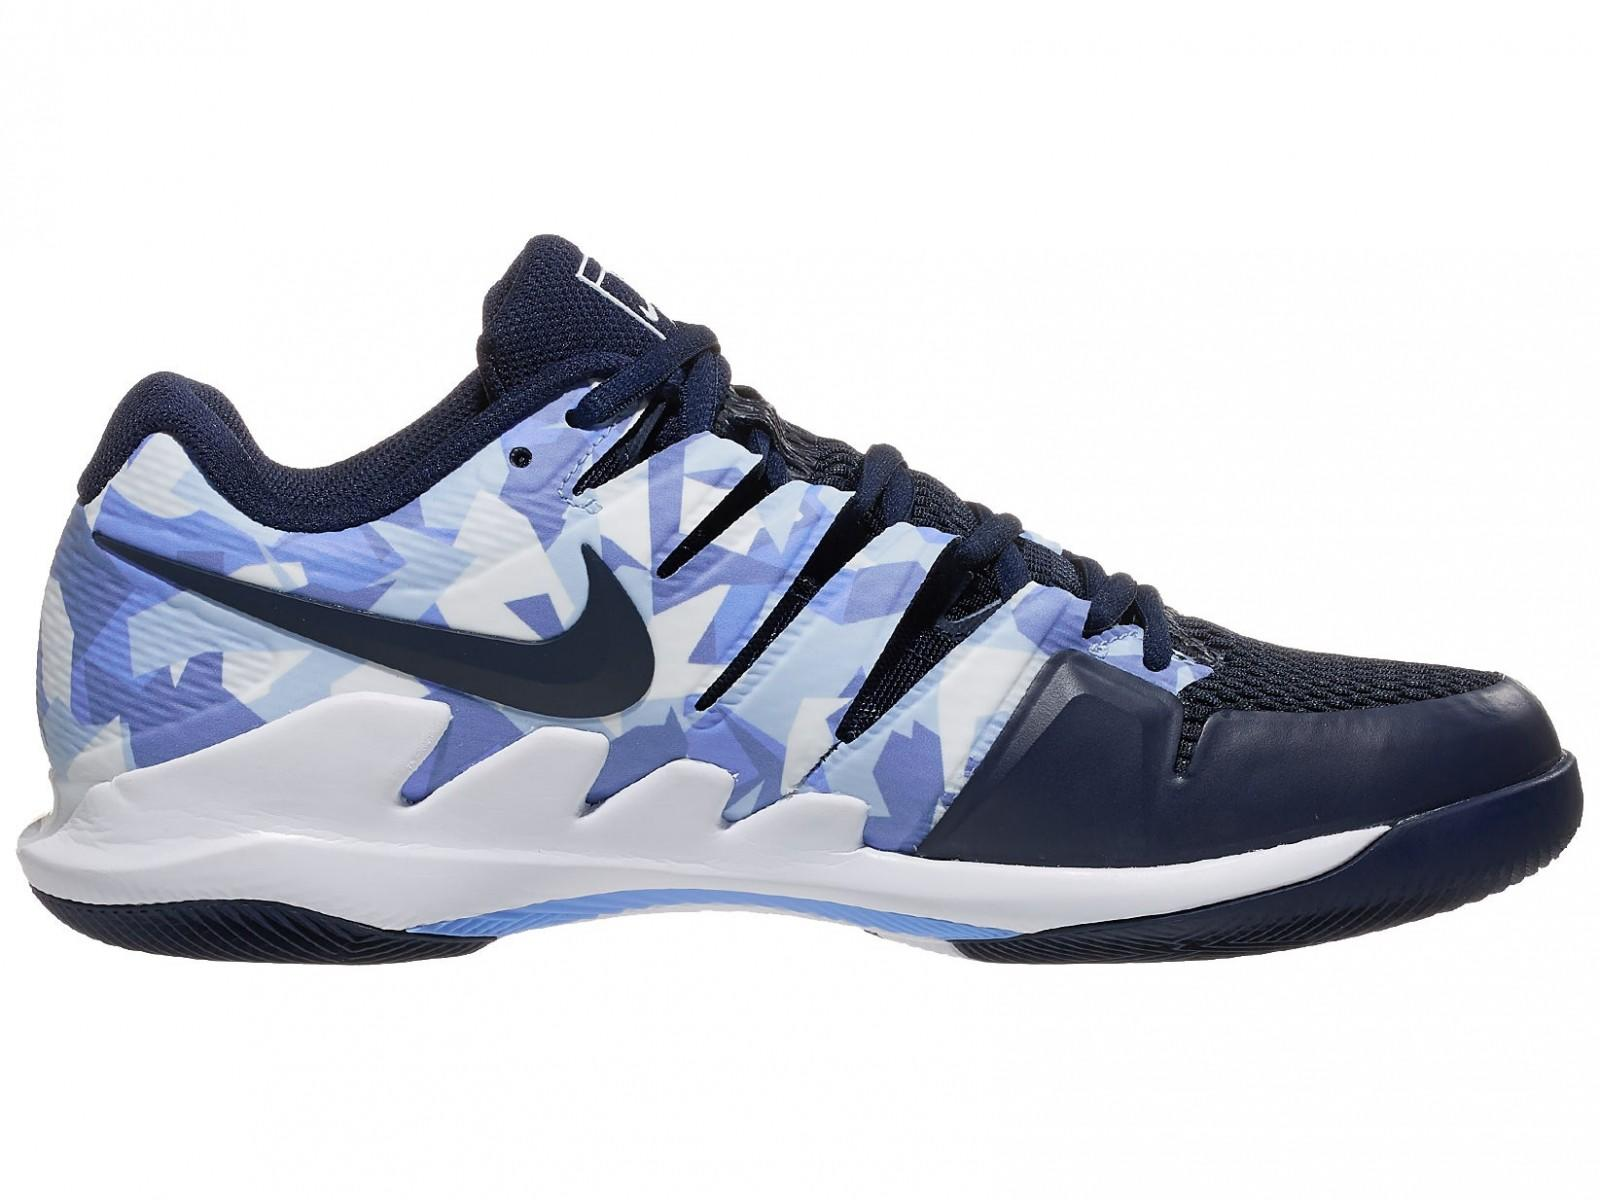 Теннисные кроссовки мужские Nike Air Zoom Vapor X royal pulse/white/indigo storm/obsidian